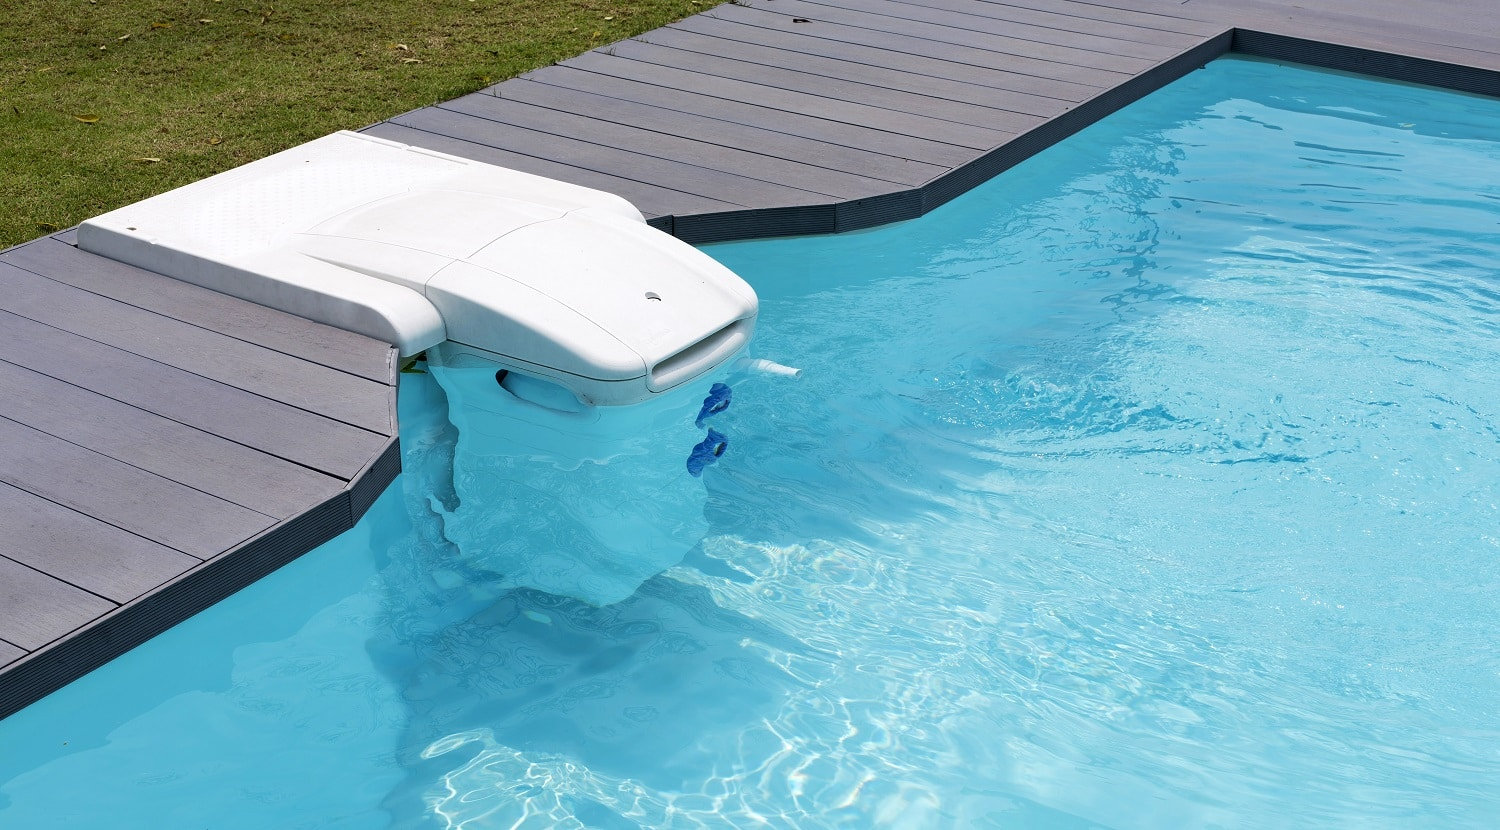 Water dispenser in pool